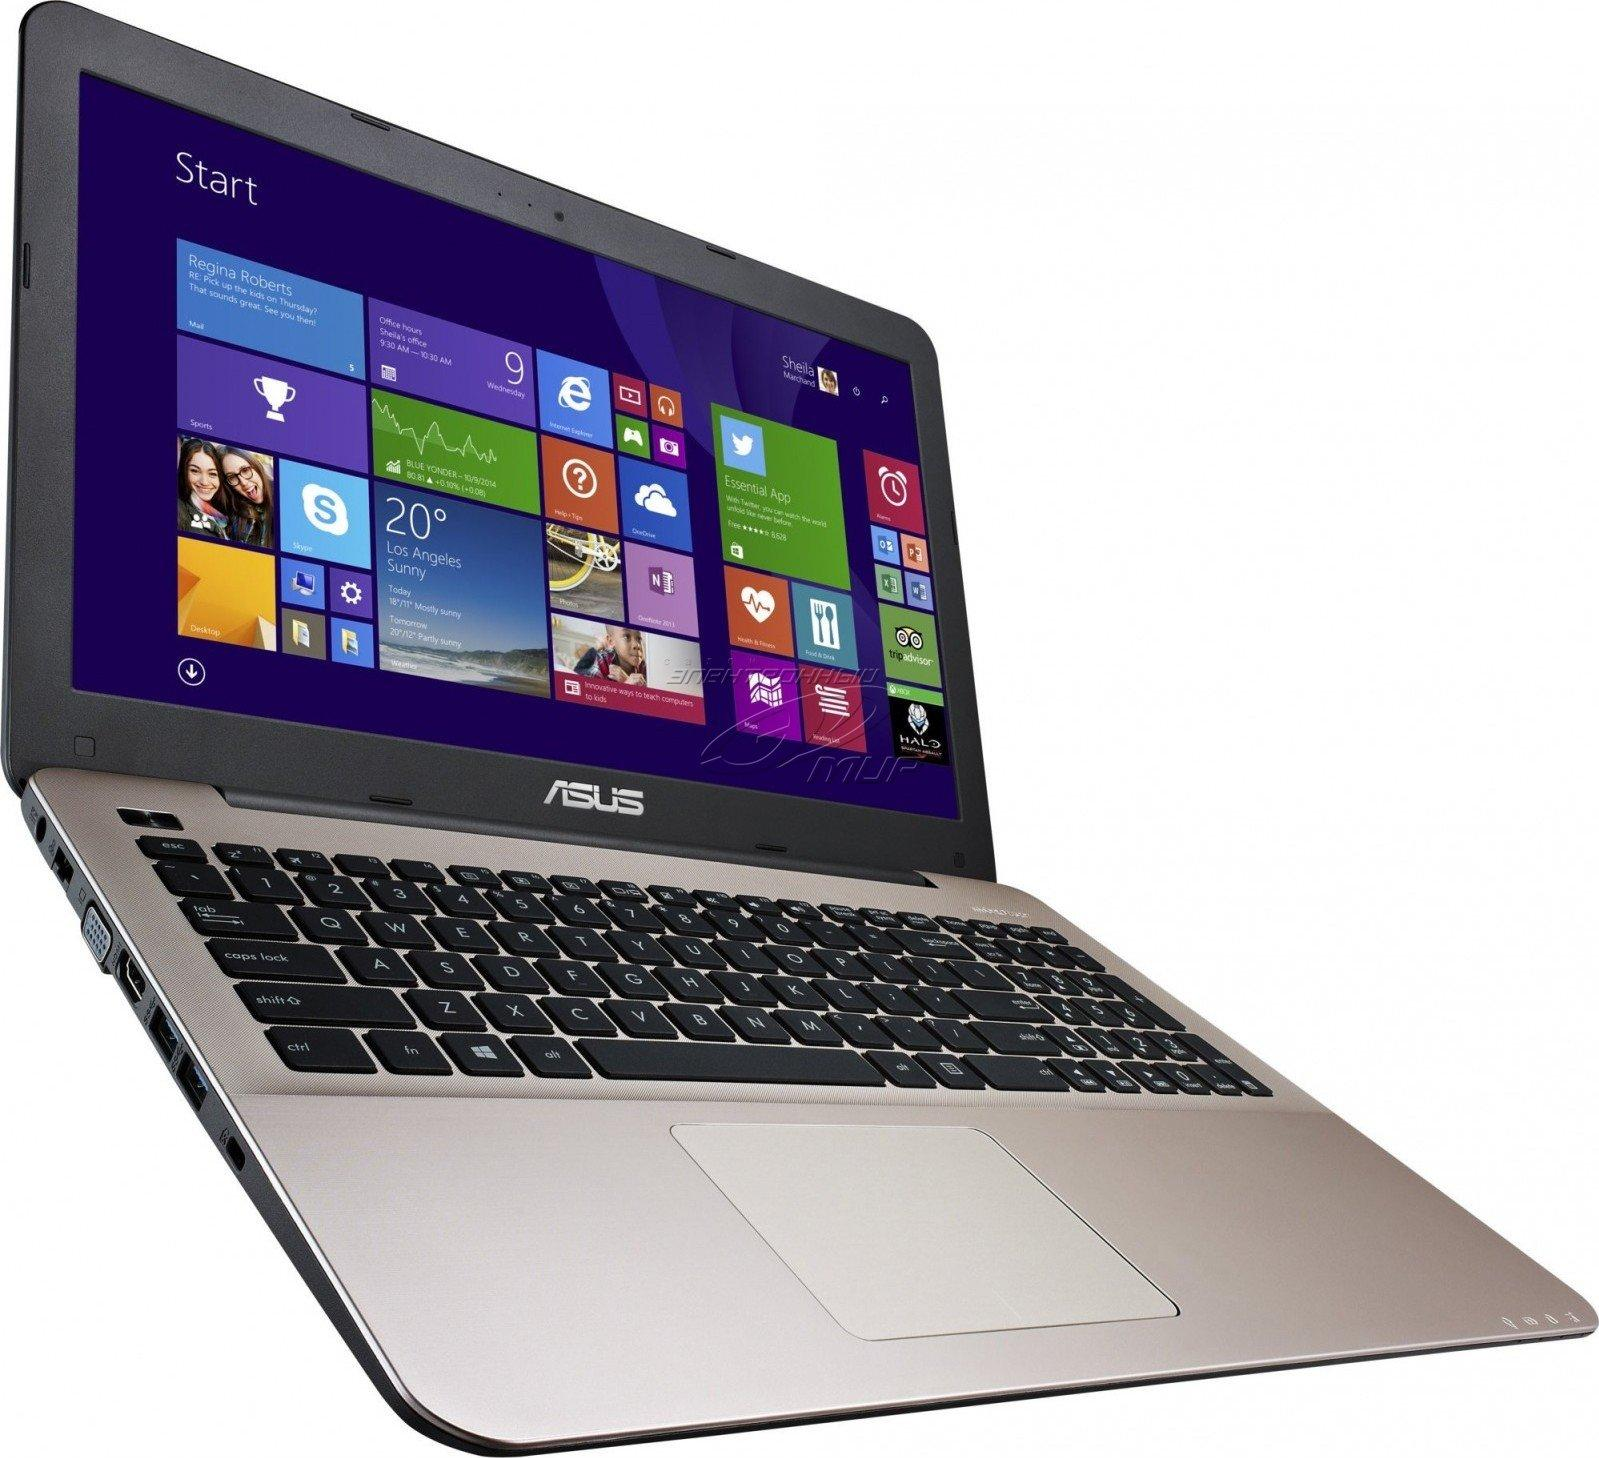 "$499.99 ASUS Laptop Core i5 6200U 1TB HDD 8GB RAM 15.6"" FHD 940M 2GB"